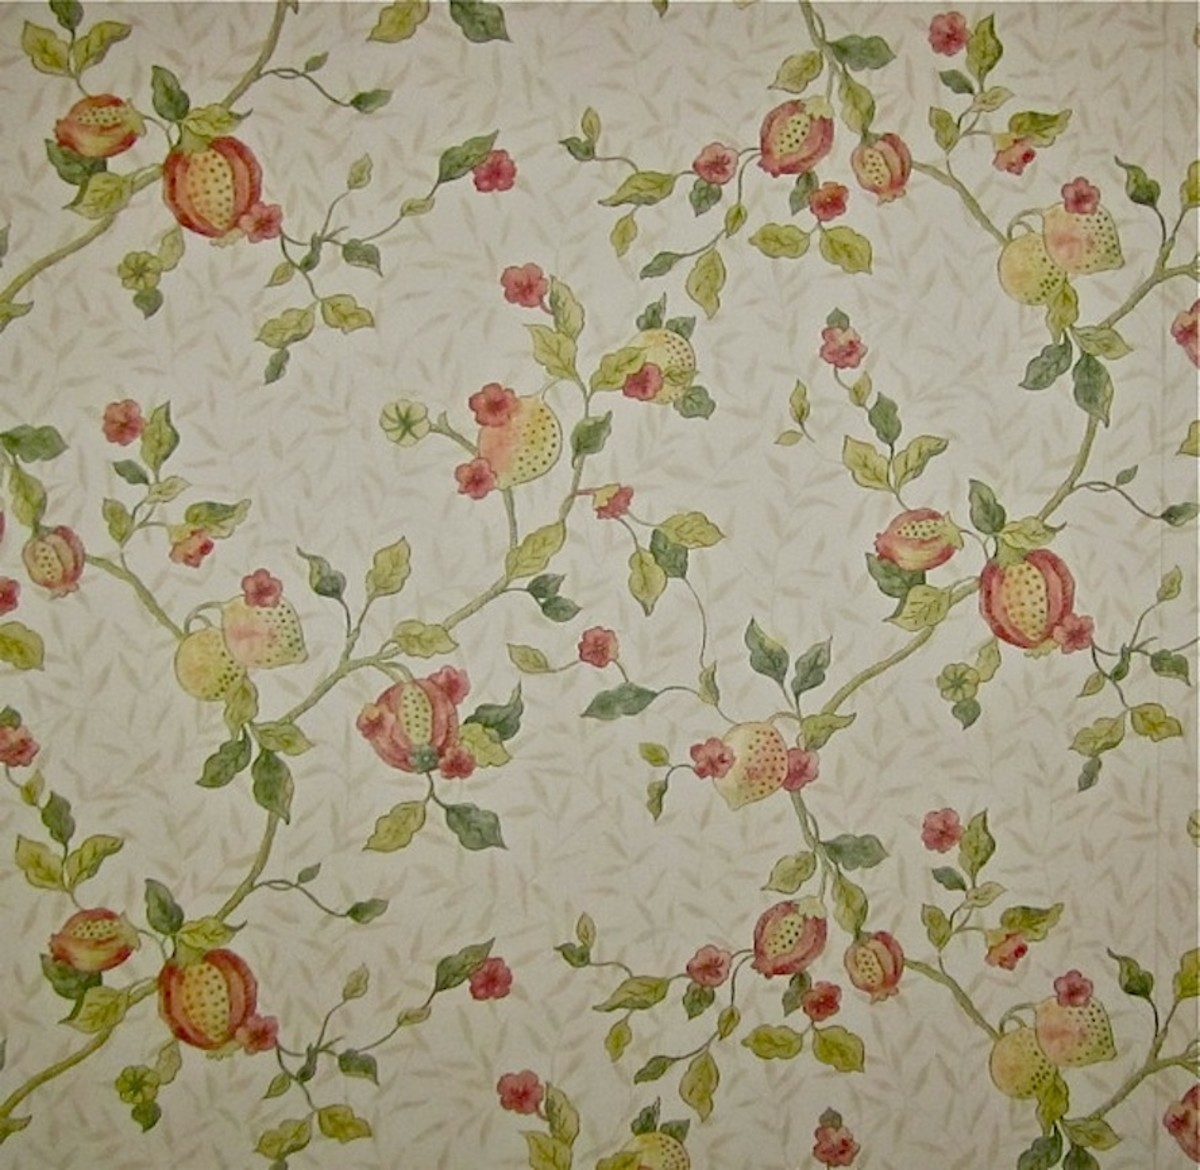 "William Morris ""Fruit Minor"" (Pomegranate) Wallpaper Design c. 1864"